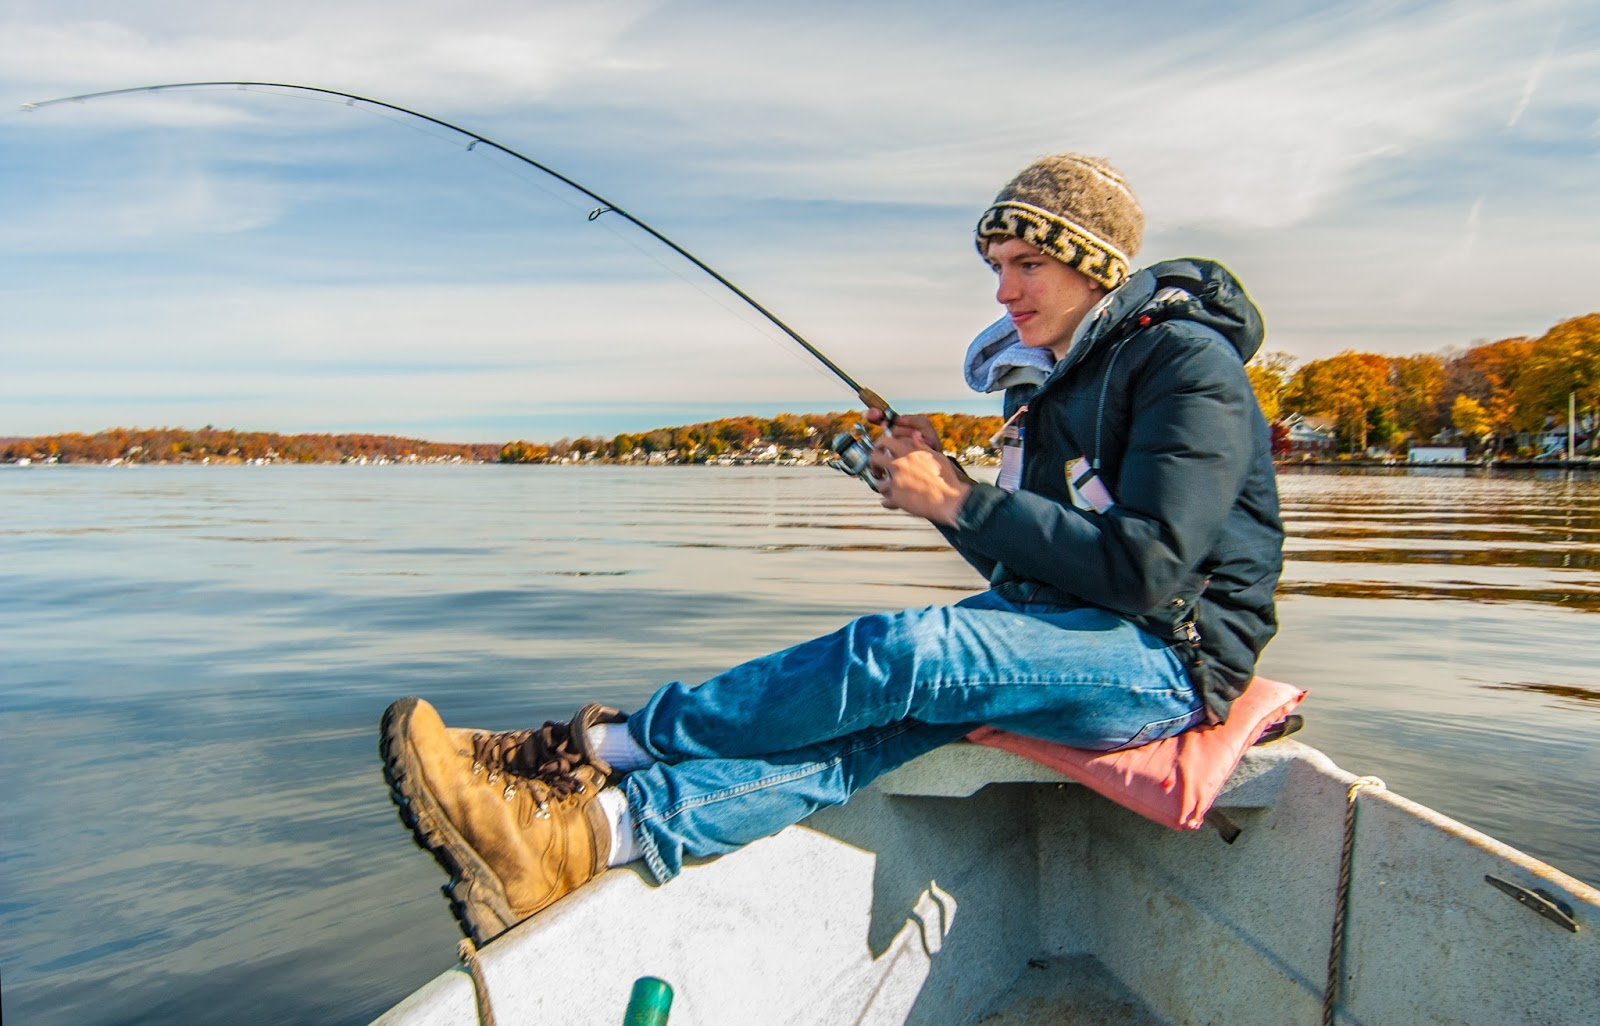 Litton 39 s fishing lines lake hopatcong walleye and largemouths for Best fishing line for walleye